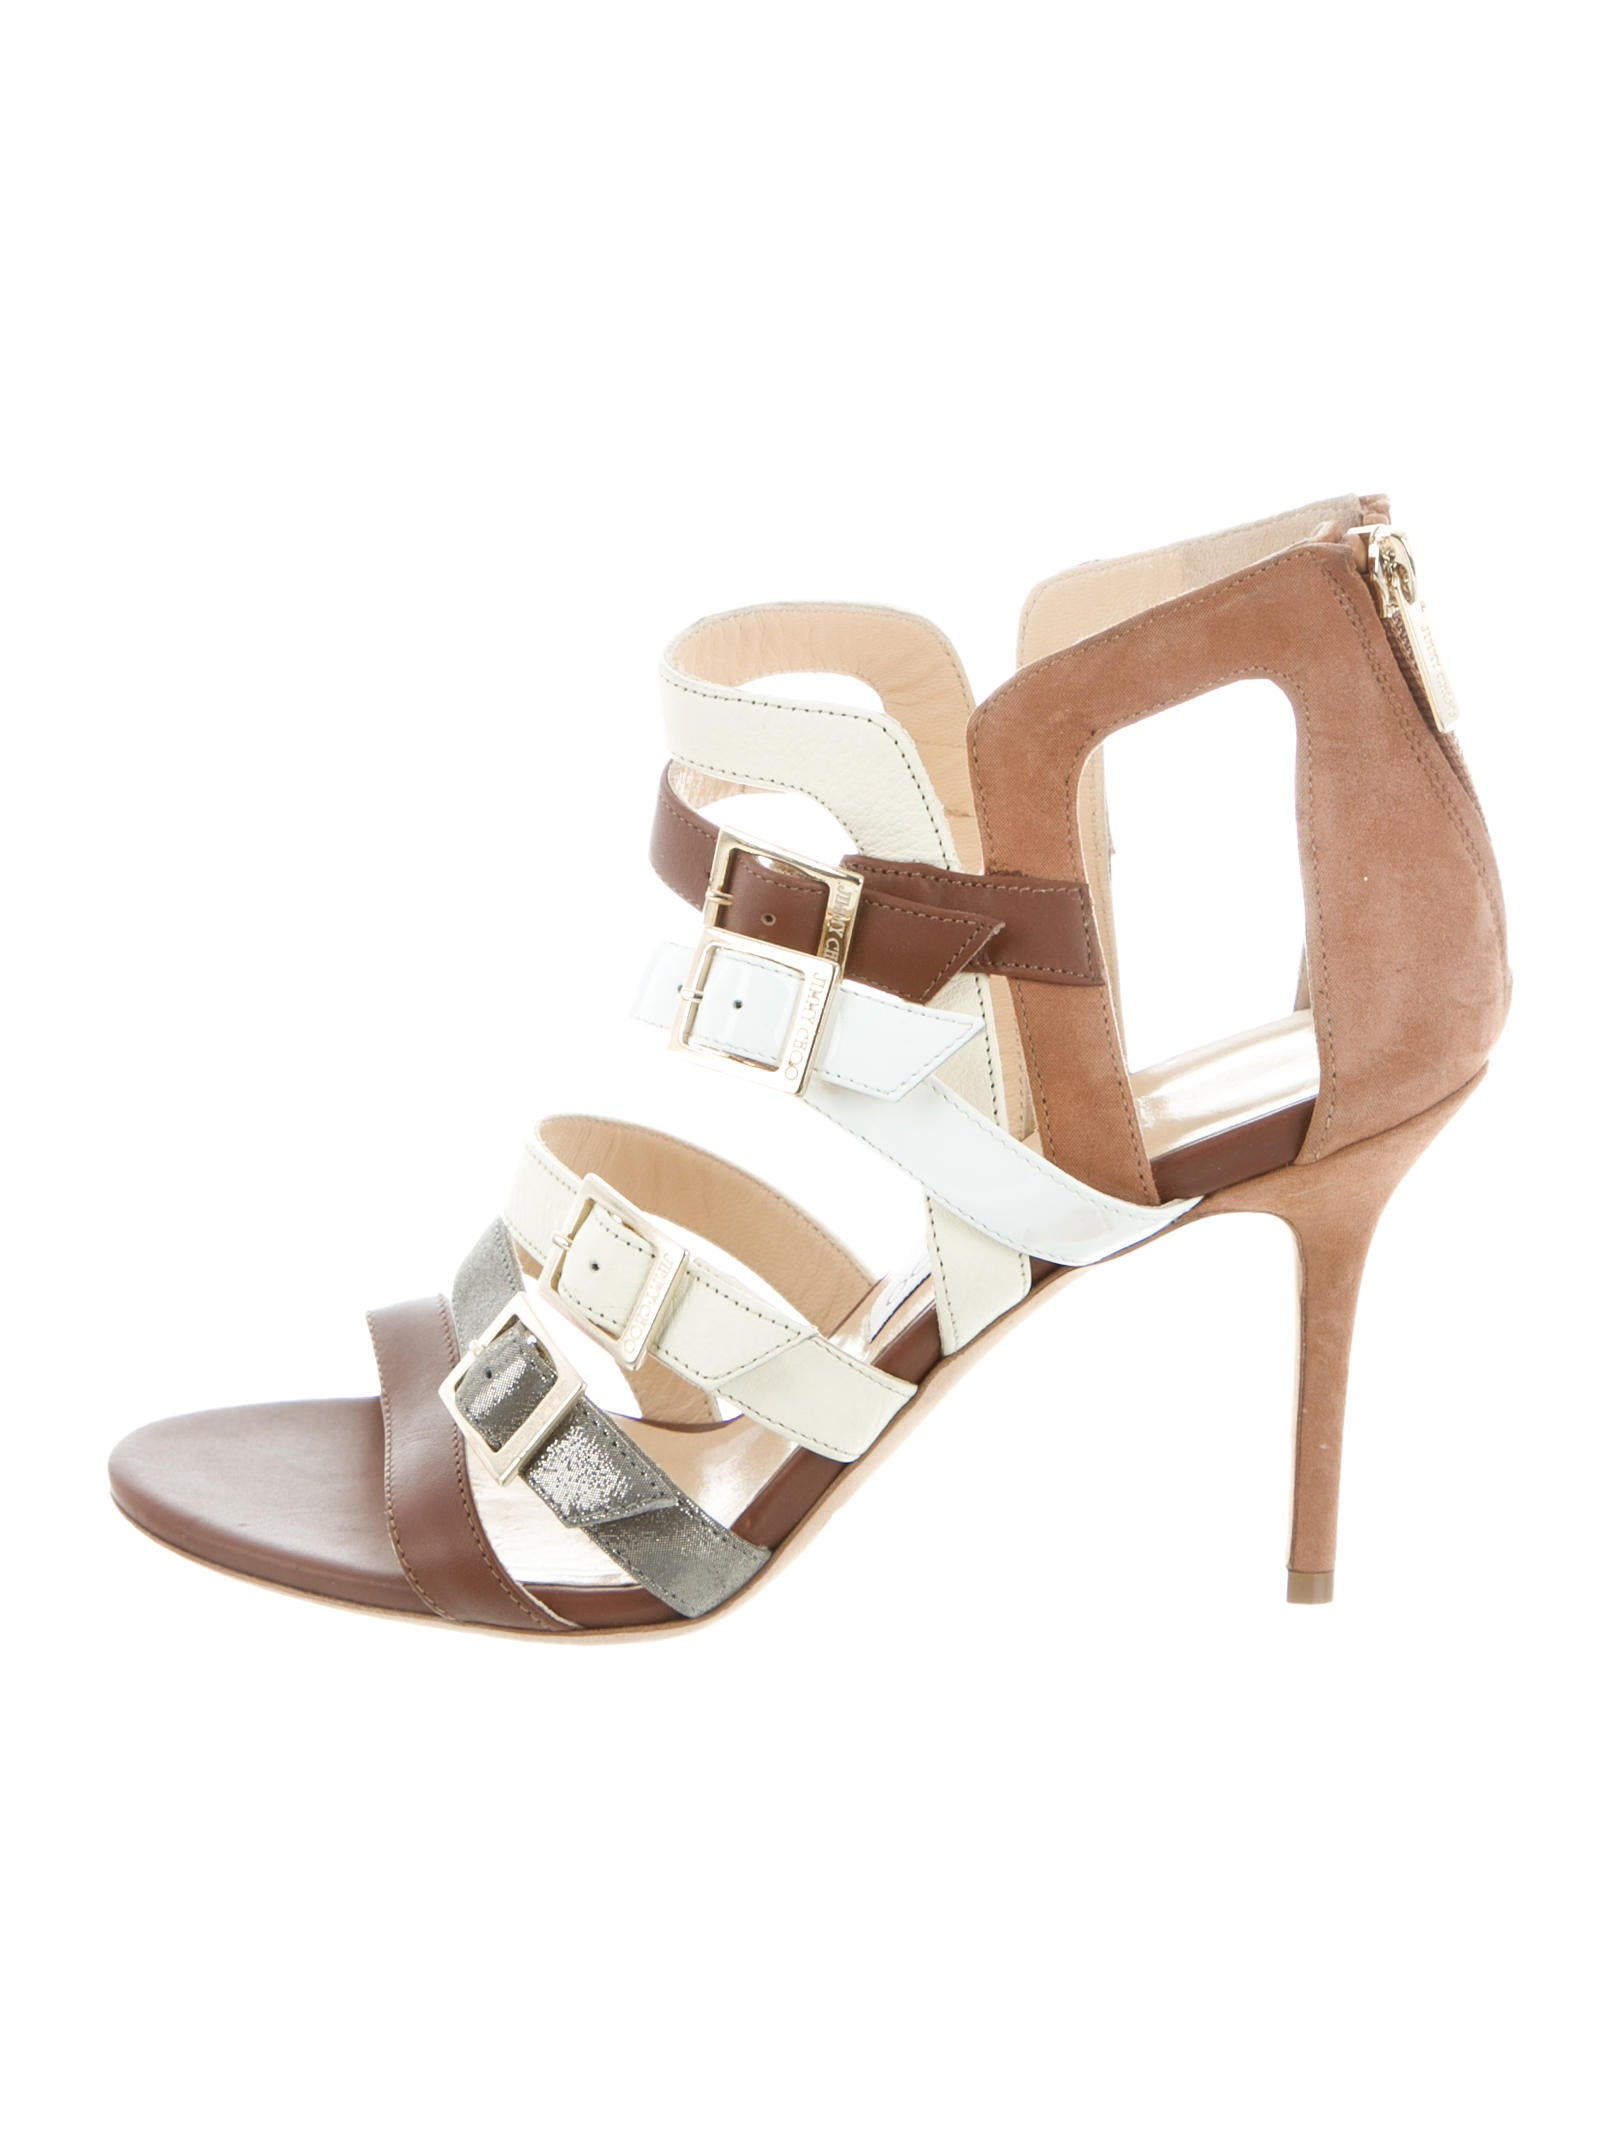 Jimmy Choo Leather Multistrap Sandals 2015 new cheap price best place for sale discount under $60 best prices sale online 34dDczSgh9